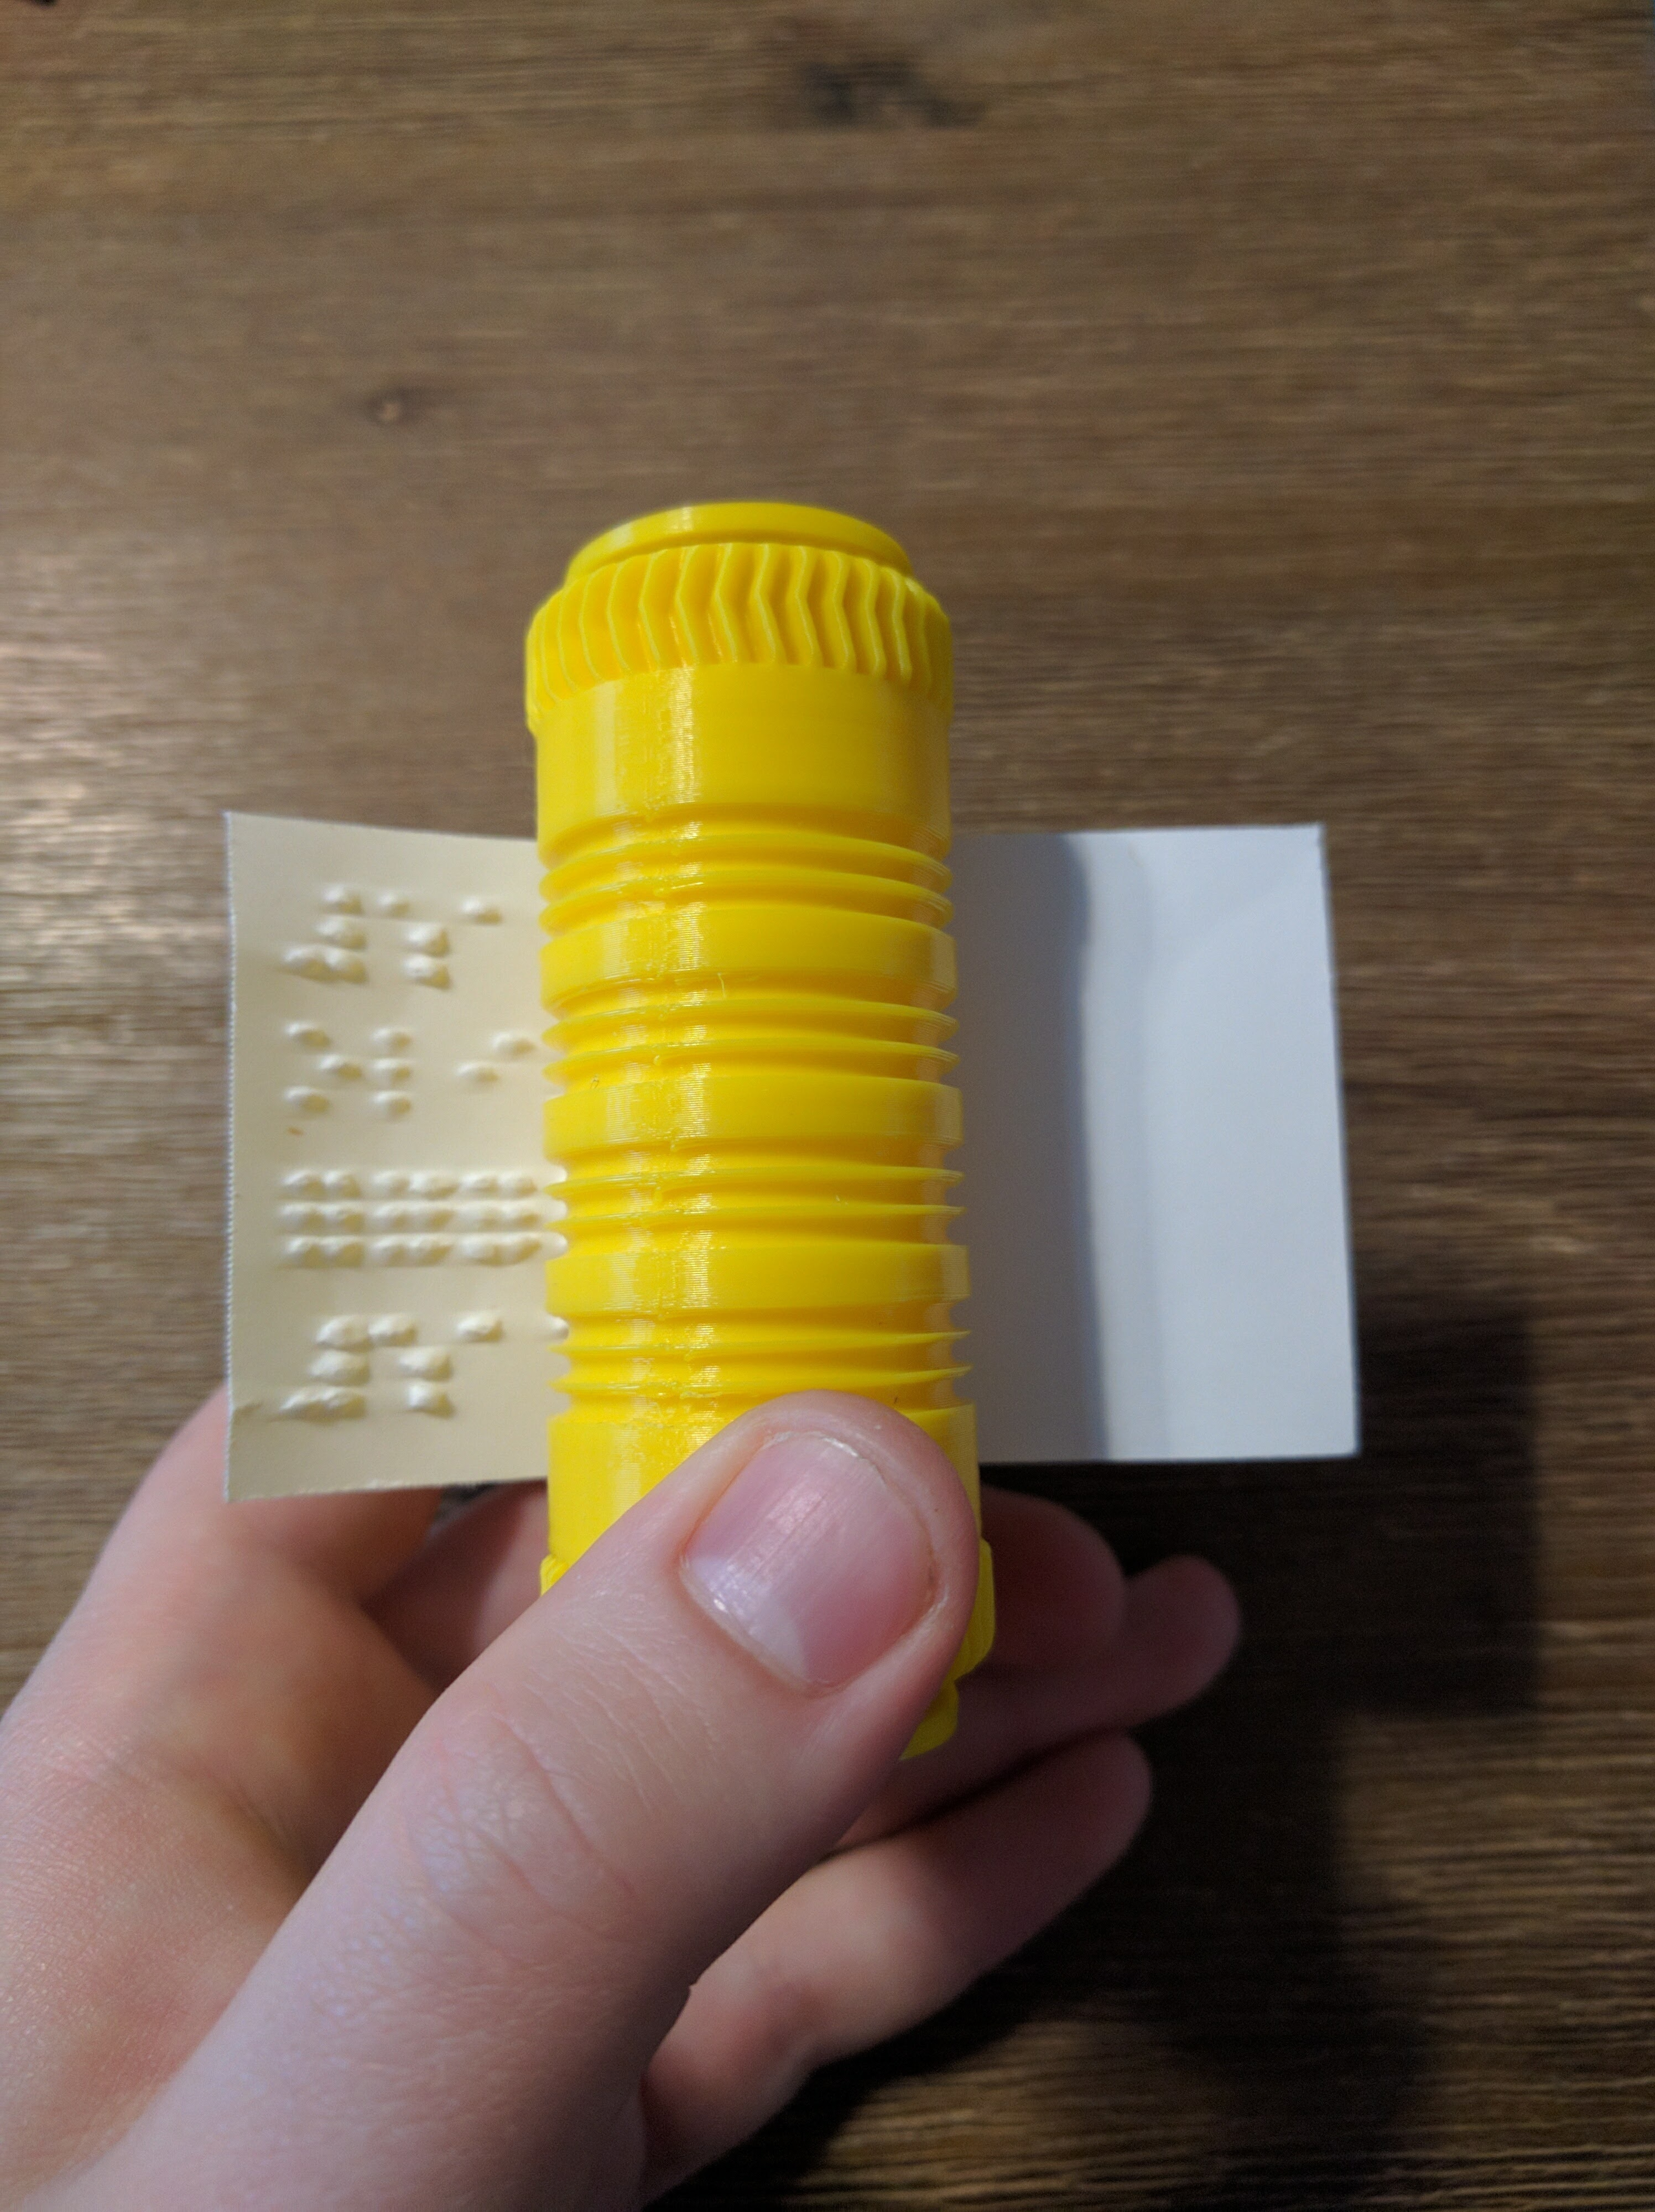 3D Printed Braille business card writer by Olivier Chabot | Pinshape